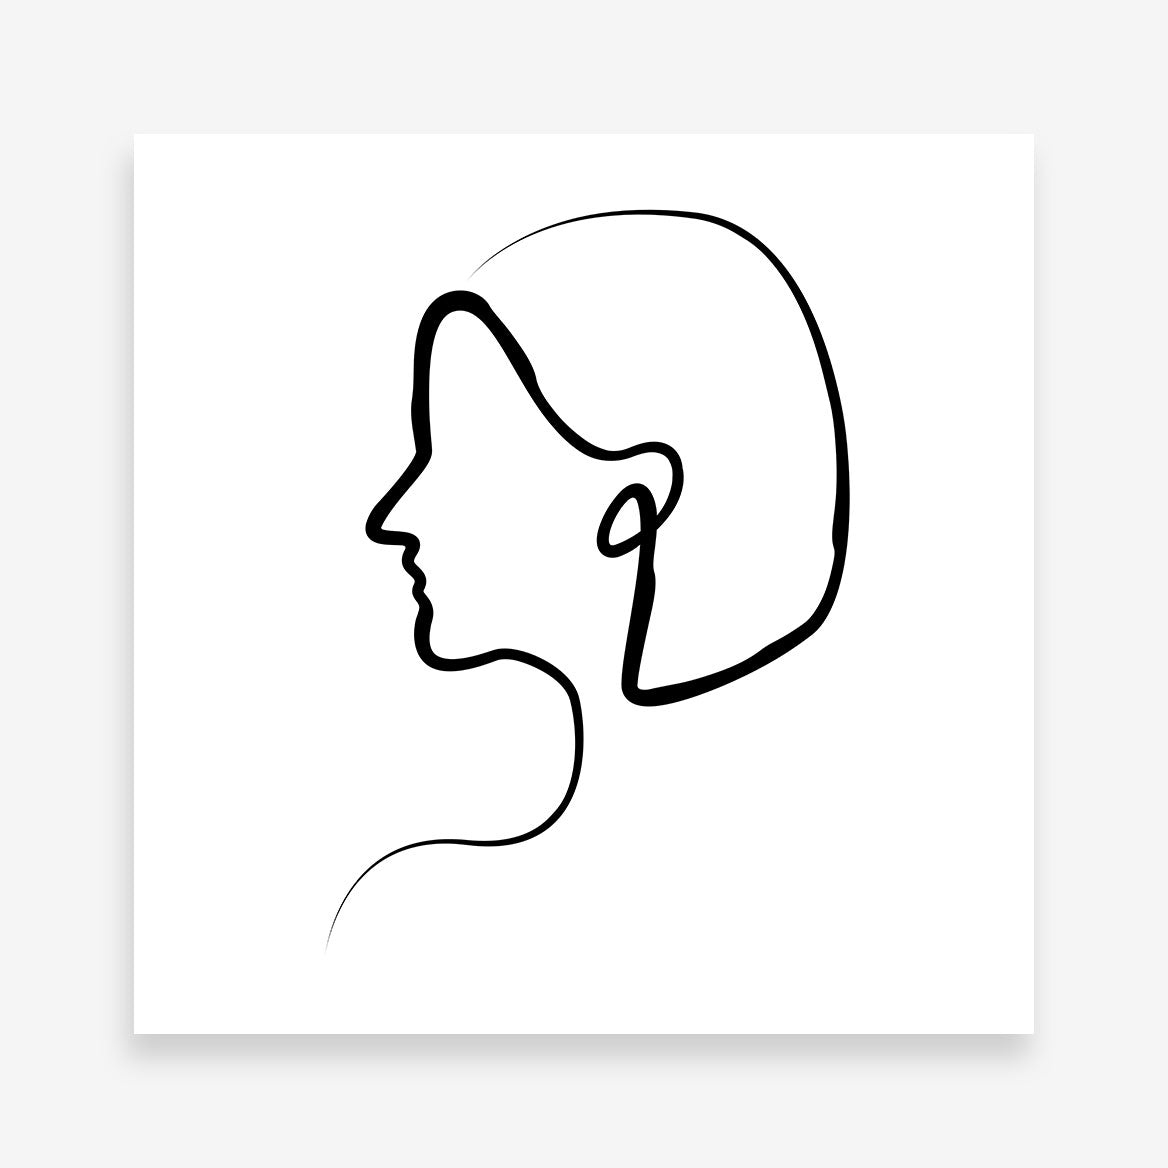 Line art poster print with a woman's profile.